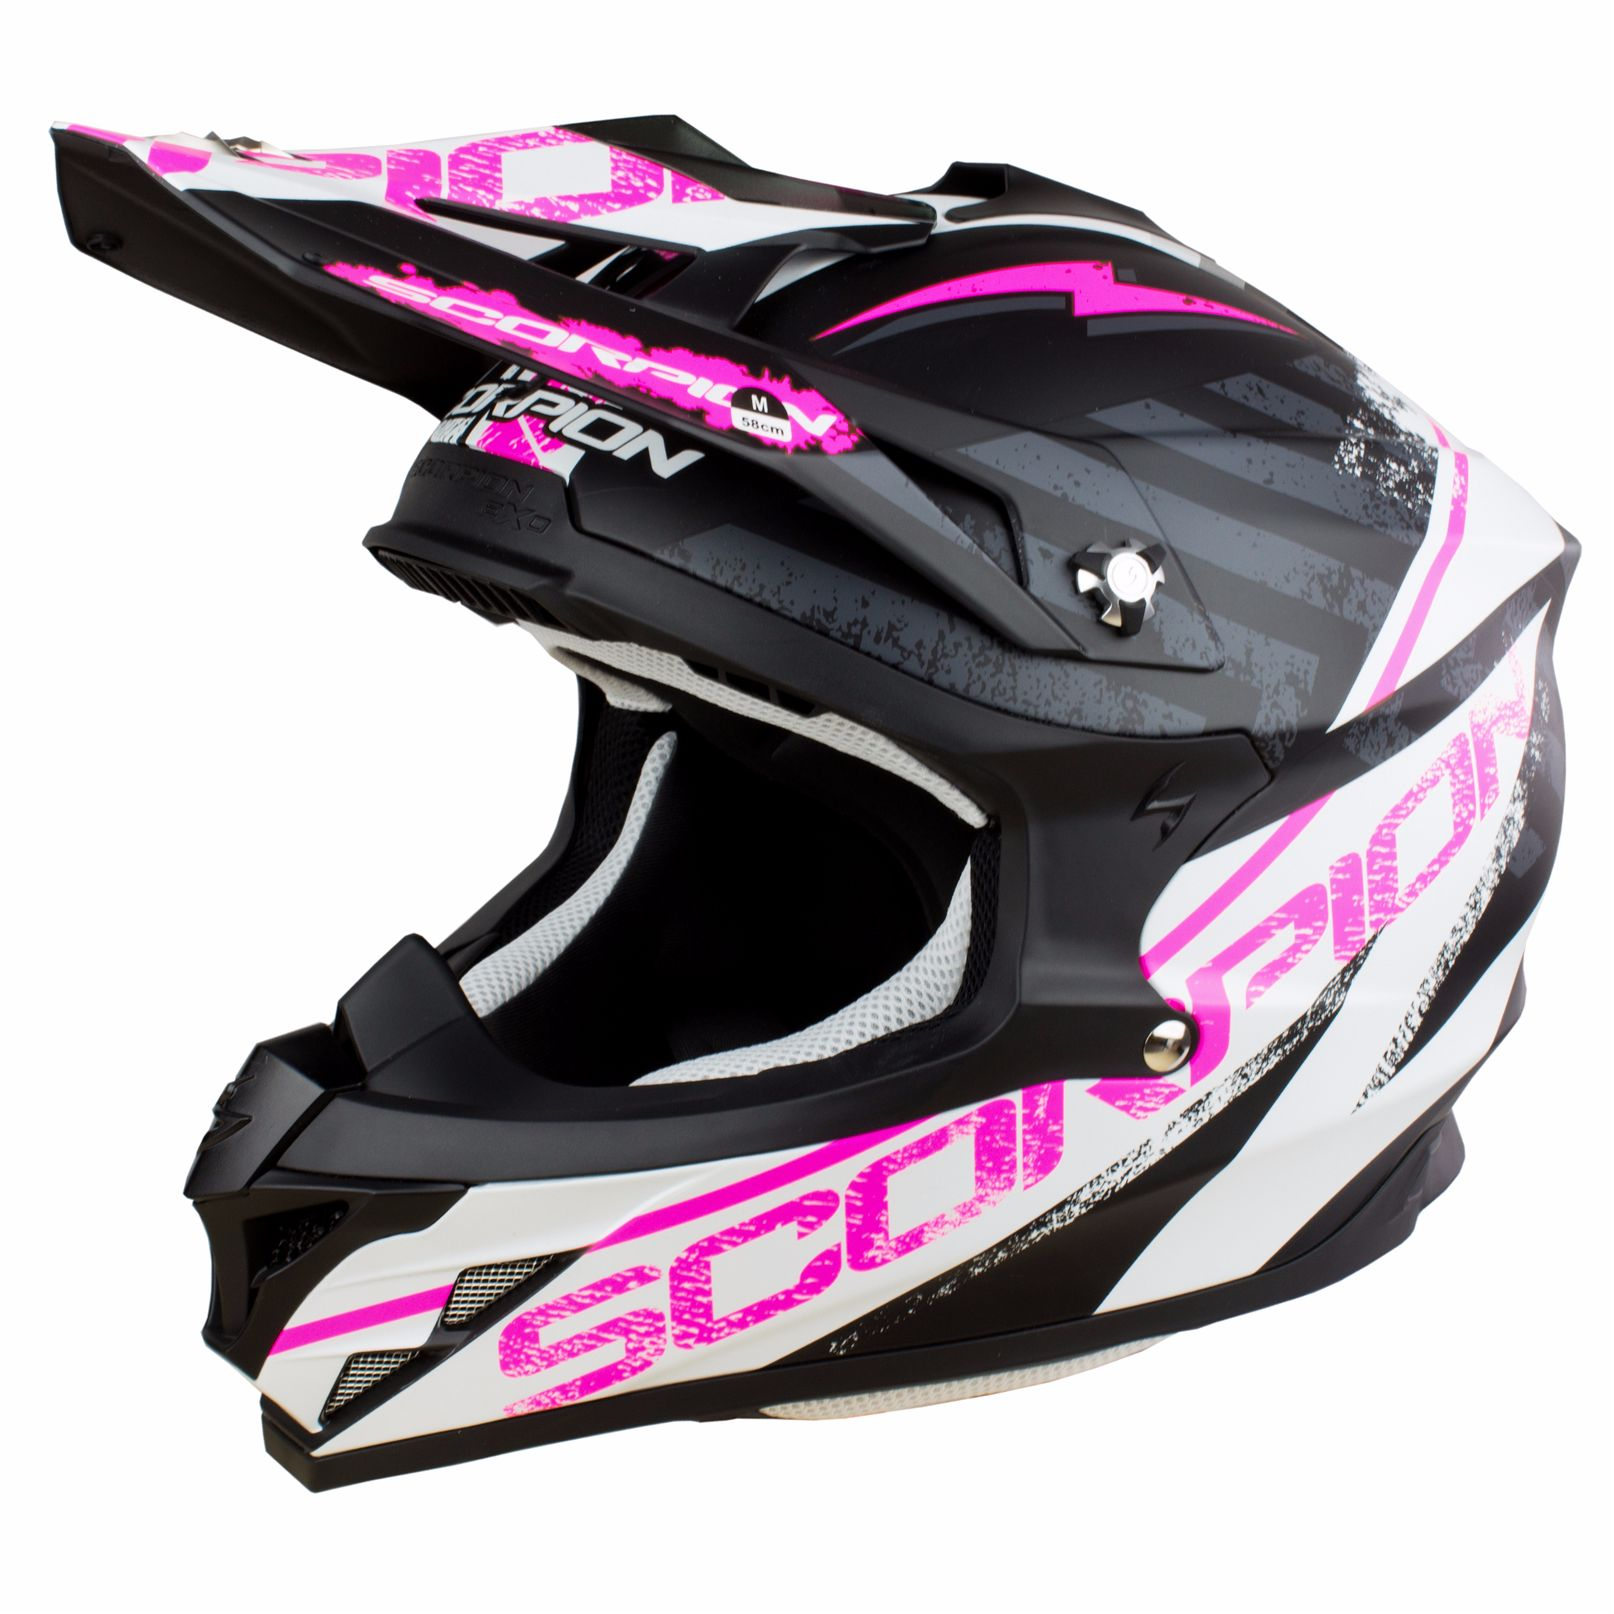 casco da cross scorpion exo vx 15 evo air gamma nero bianco rosa 2018 casco. Black Bedroom Furniture Sets. Home Design Ideas